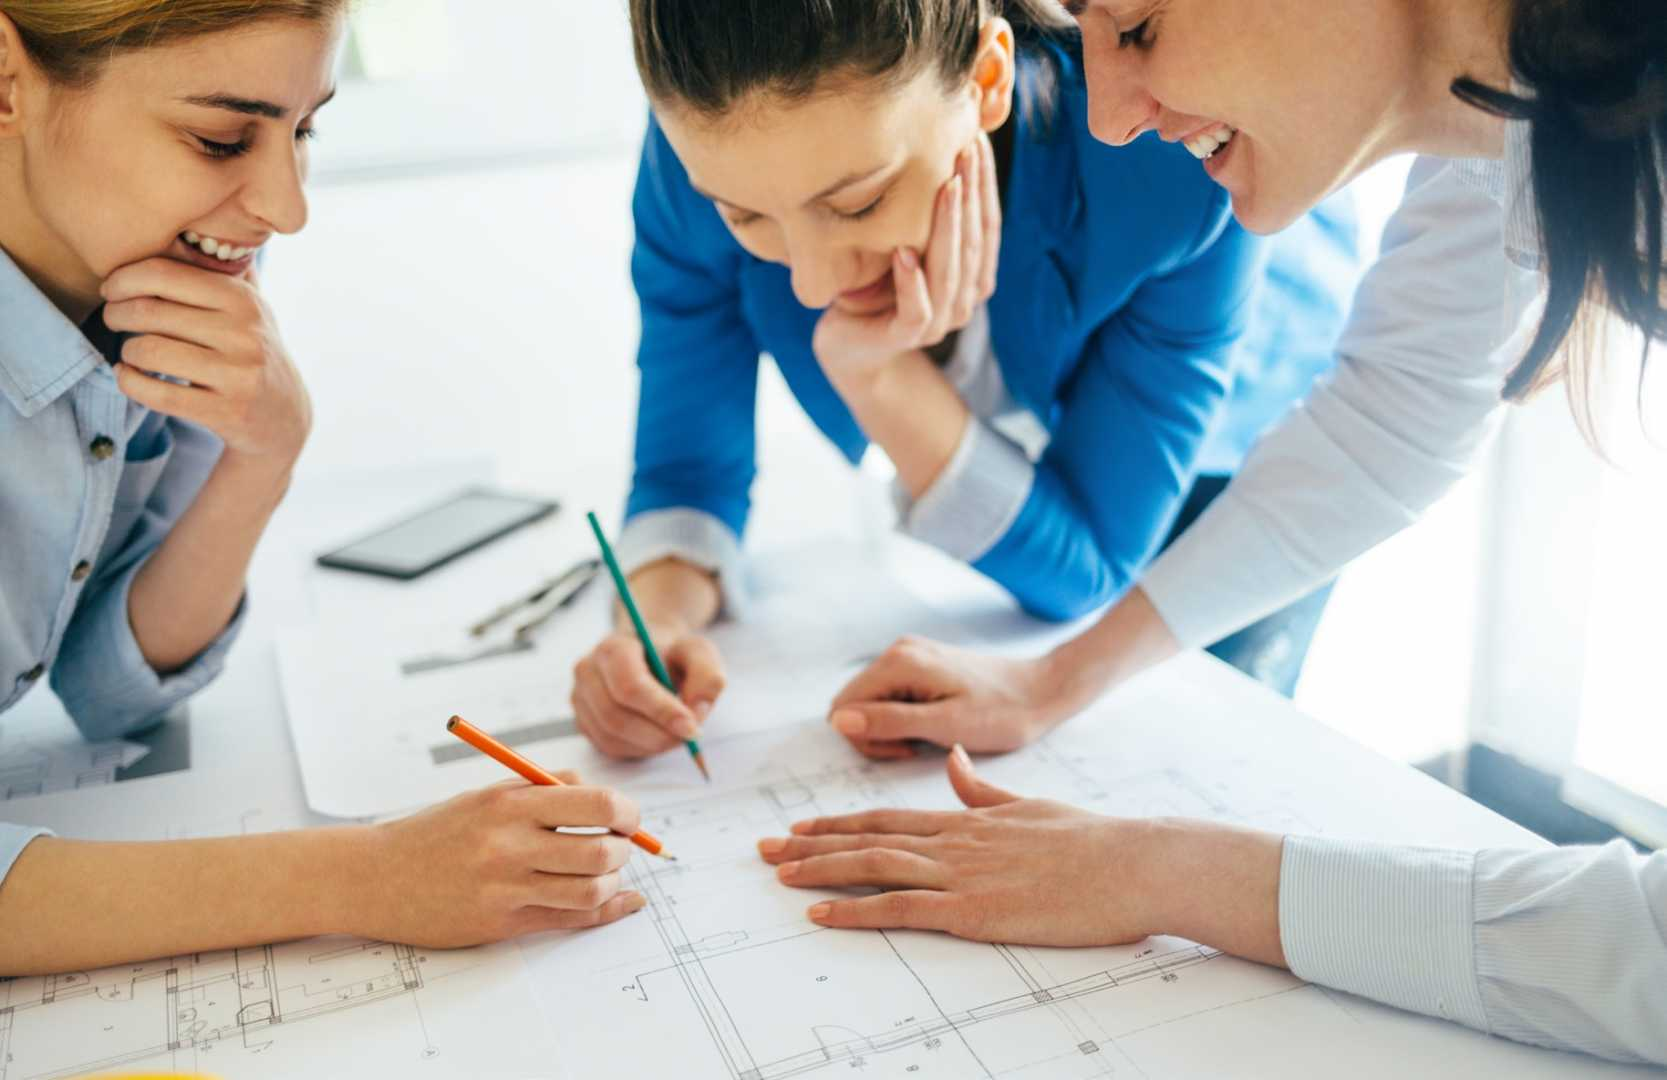 Employee Engagement Innovation Collaboration Workforce Meeting - Stock Image